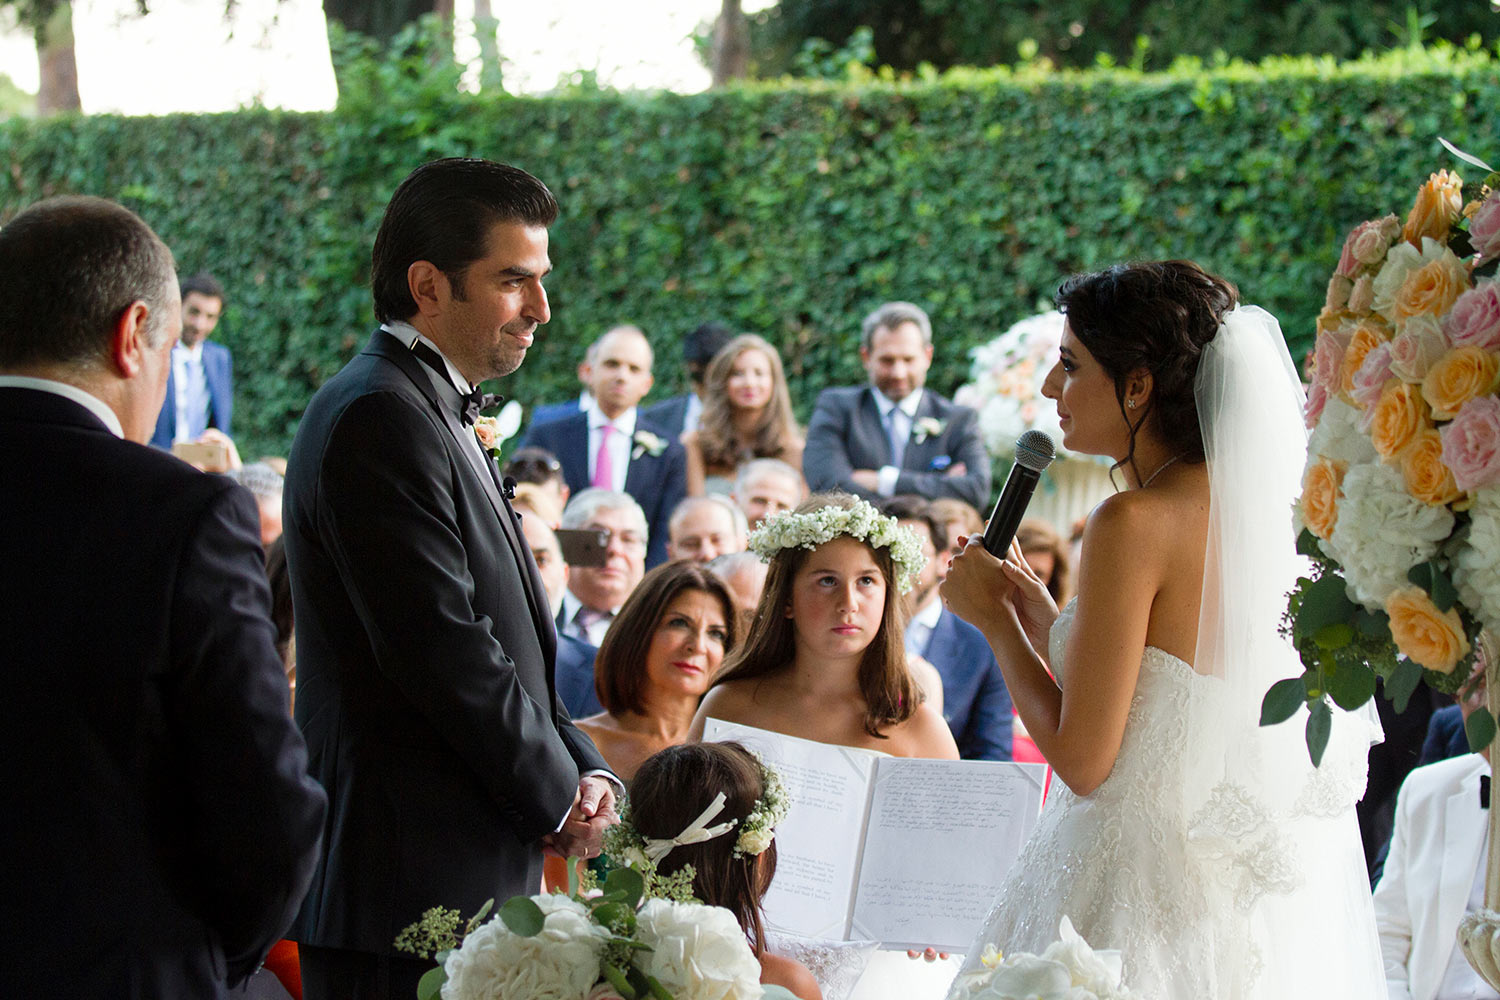 Outdoor civil ceremony Italy